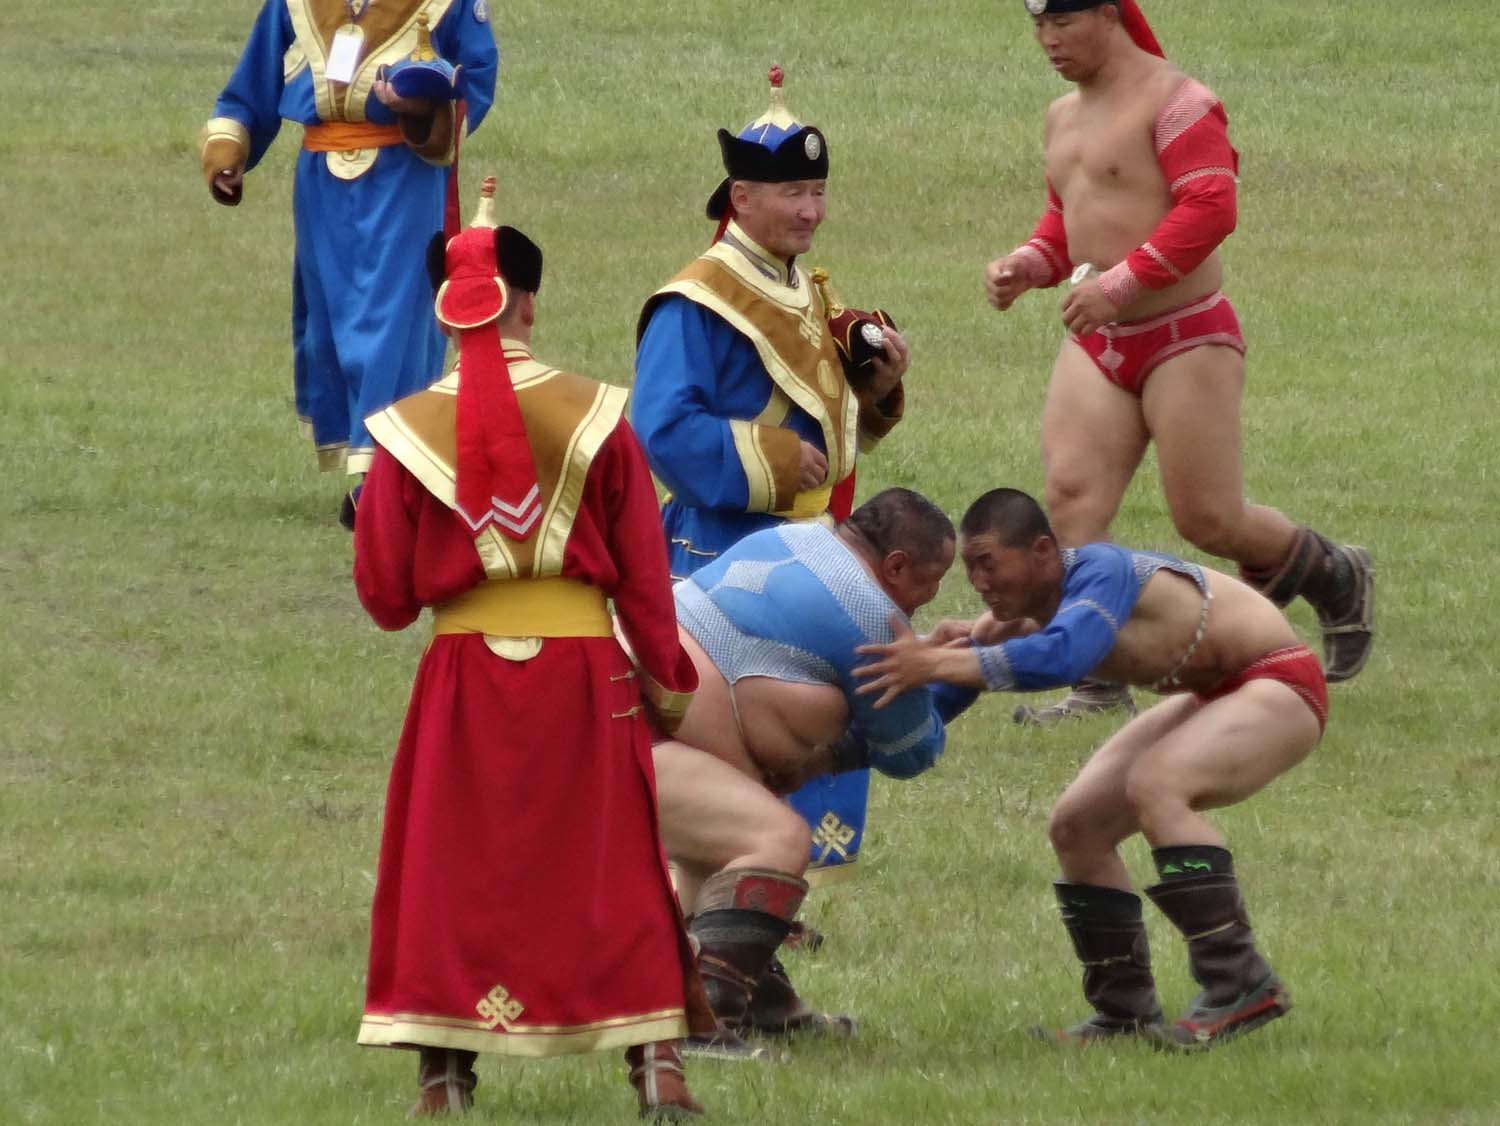 as there is no weight-class in Mongolian wrestling some of the earlier matches seem very unfair...